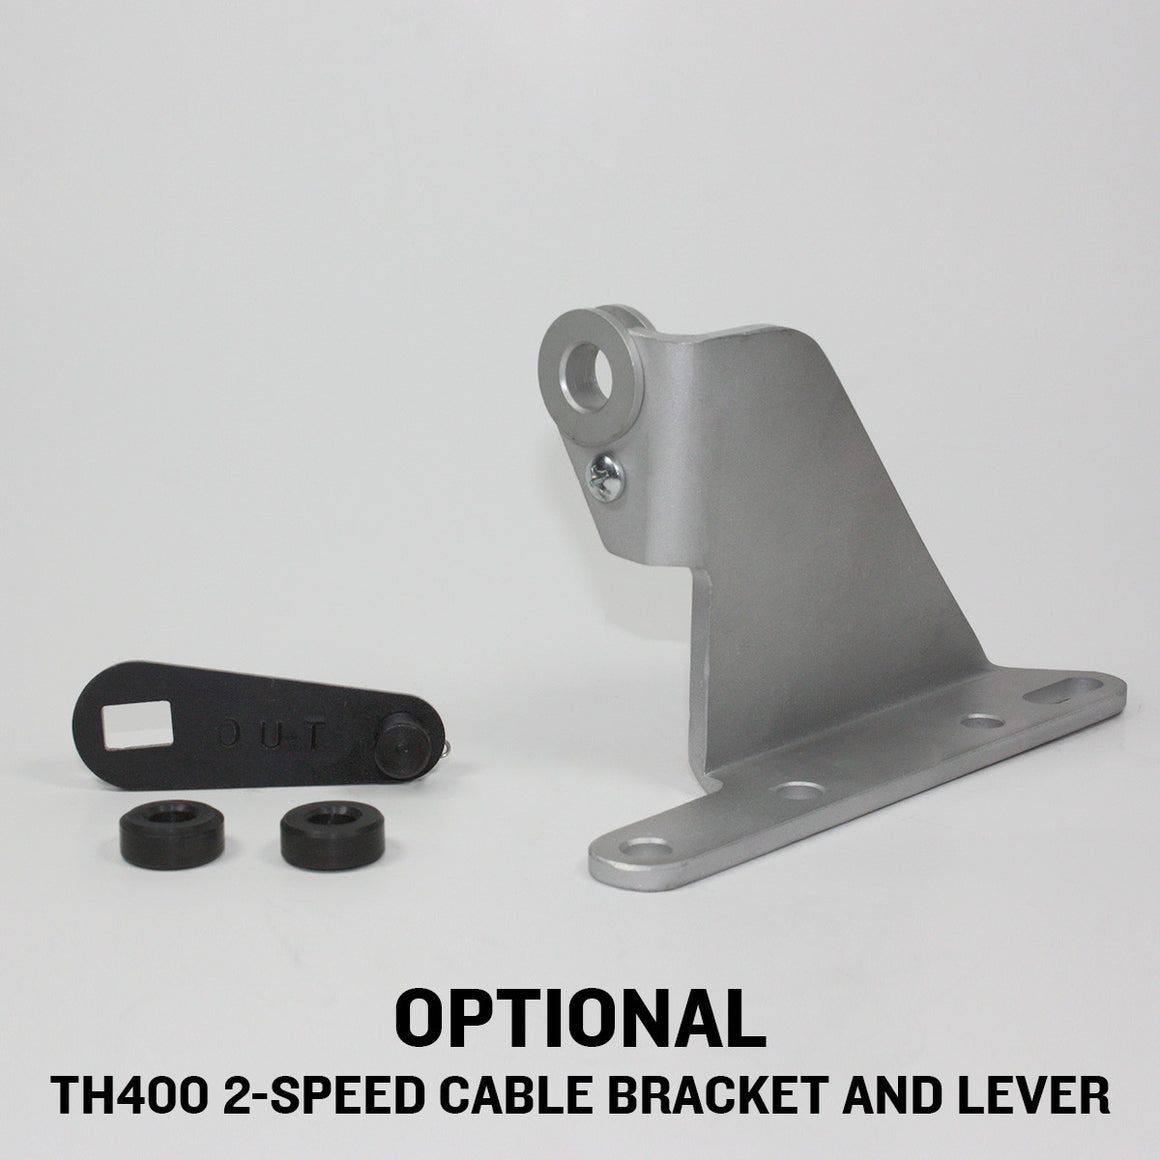 PPP616 cable bracket and lever for th400 2speed opt_4c8d7017 bbfd 4e0f 8eac 19972fd41e93_580x@2x?v=1492194564 precision performance kwikshift 1 air shifter 2 speed push pattern Stanley Hardware at pacquiaovsvargaslive.co